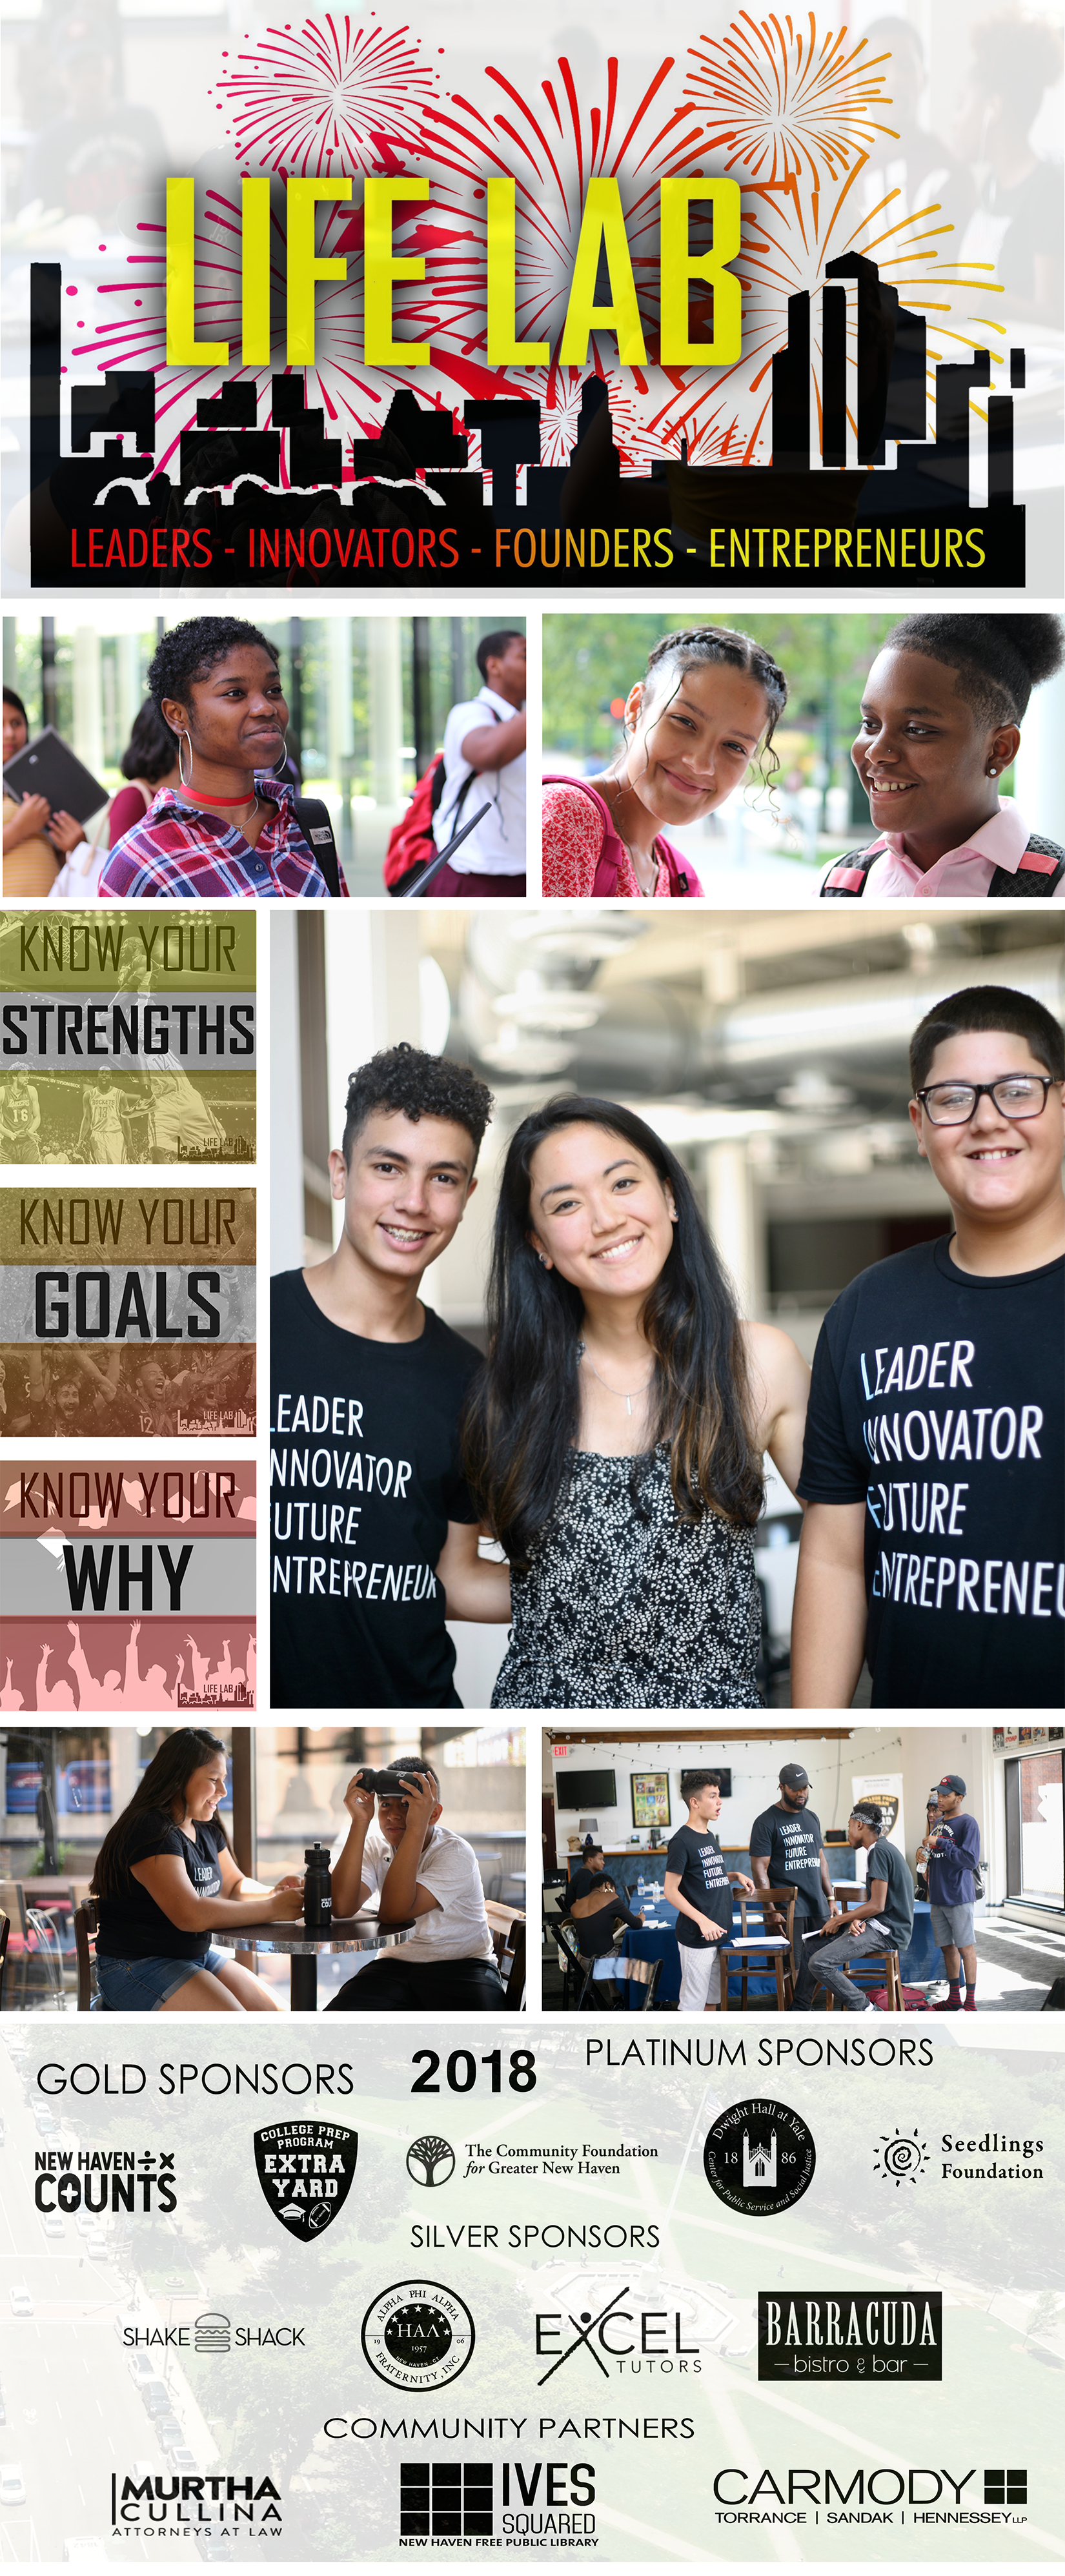 CELEBRATING the RAW entrepreneur-ial TALENT of new haven students INVIGORATESus all. - We could not accomplish our goals without the support, involvement, and enthusiasm of our committed supporters and financial contributors.